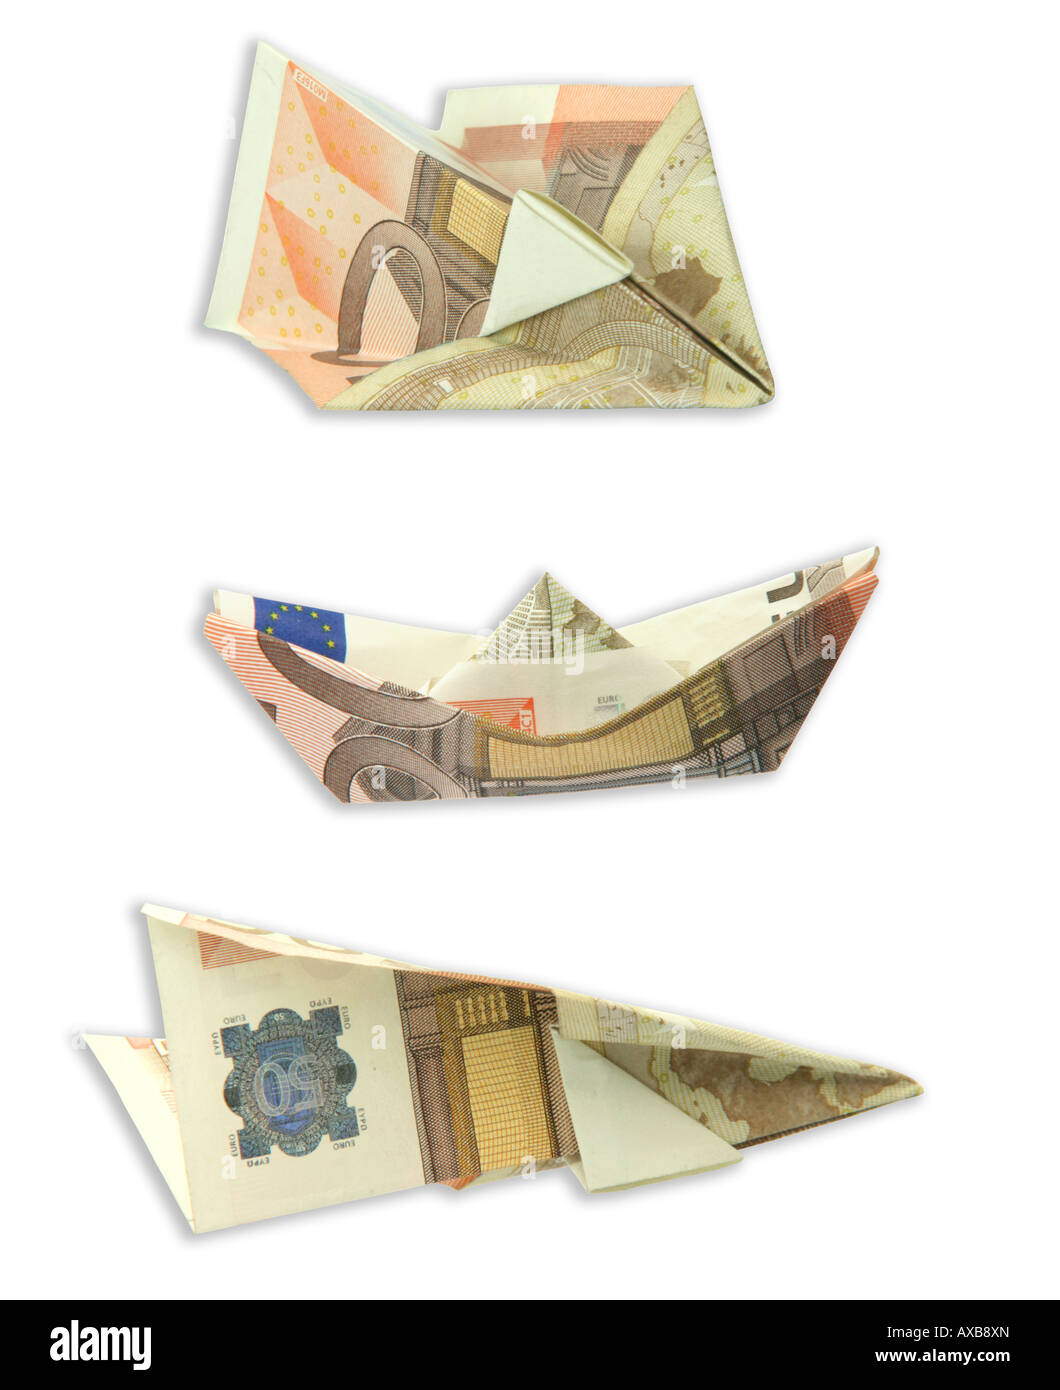 Trasportation Figures Made Of Euro Banknotes Airplanes And Boat Isolated On White Background With Clipping Path